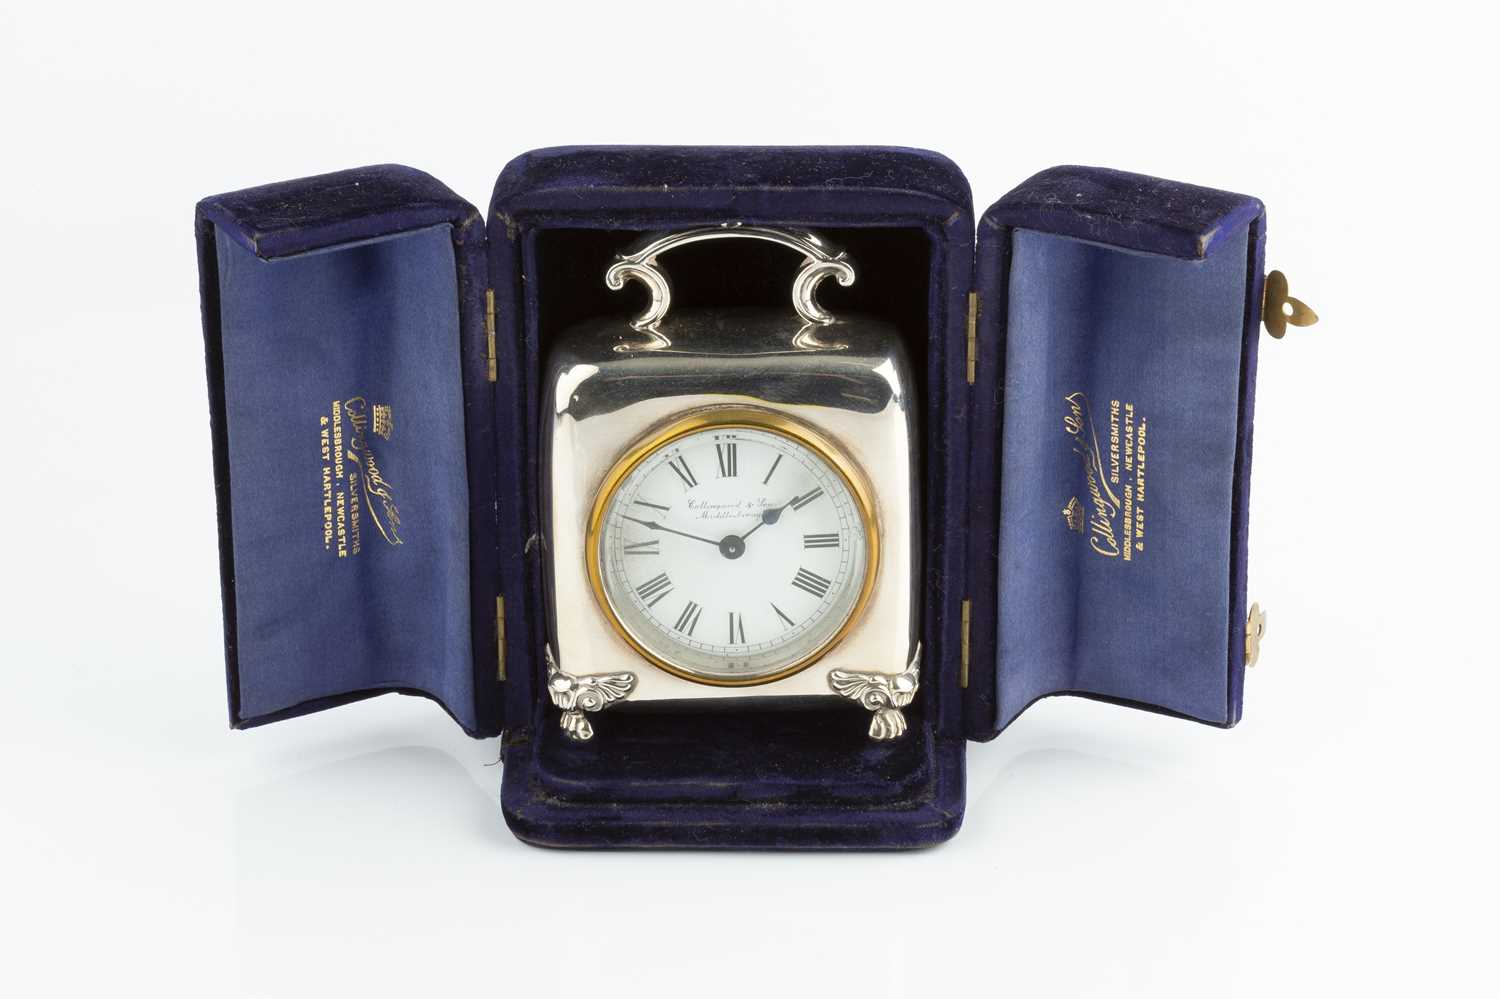 An Edwardian silver cased mantel timepiece, of rounded square design, with scroll handle, and